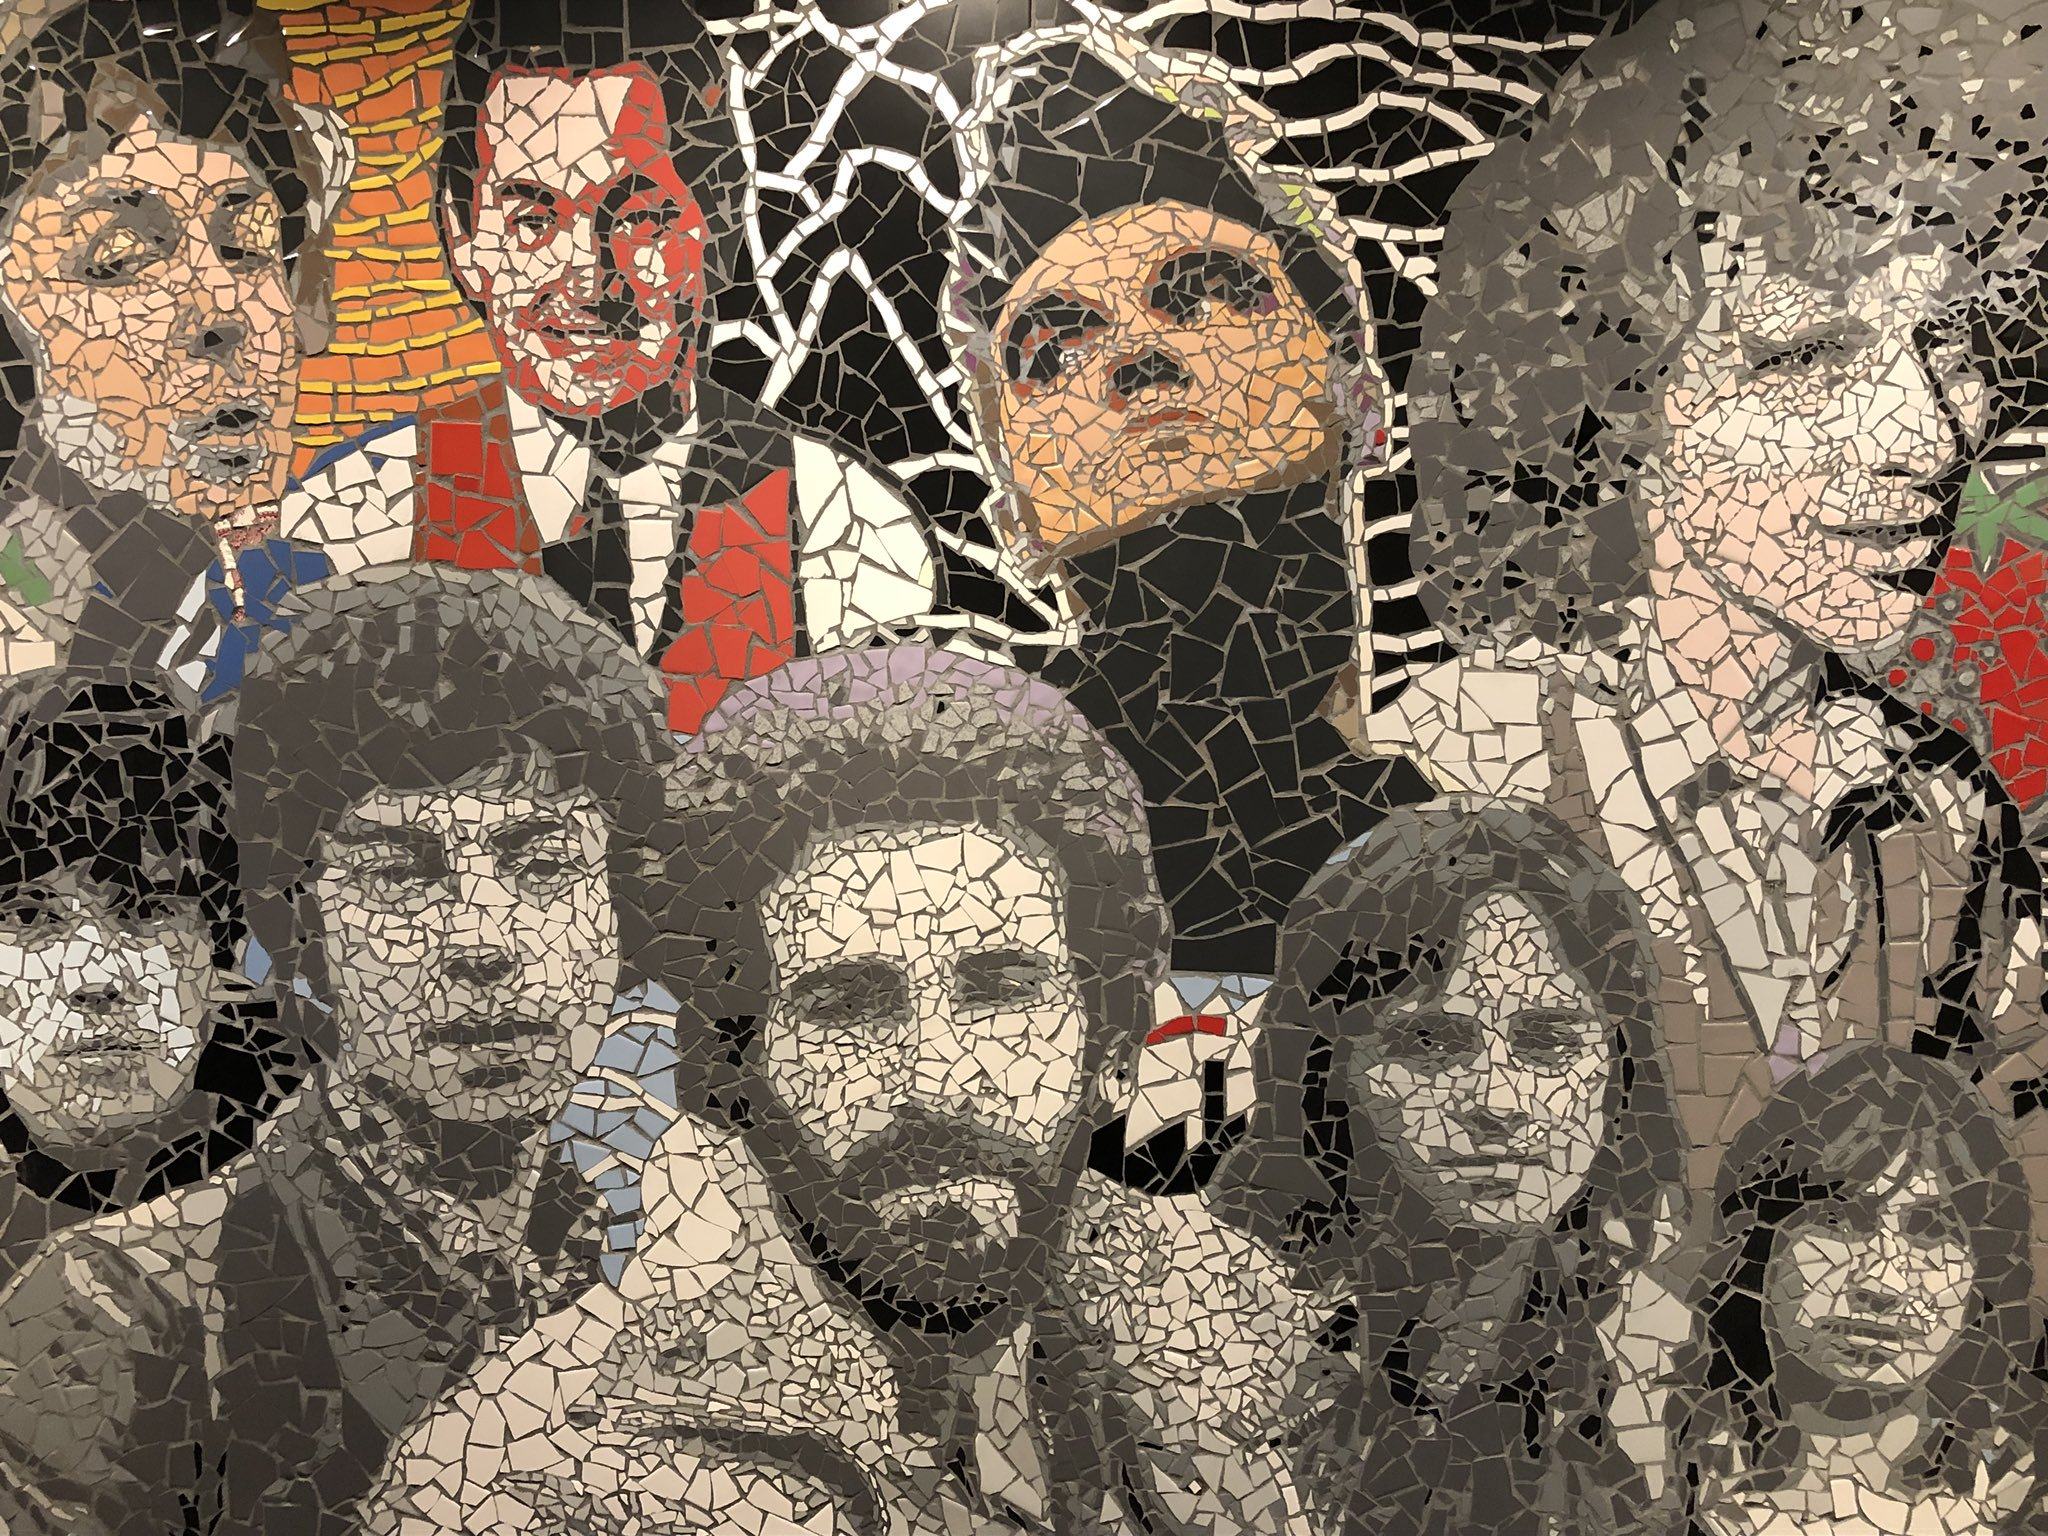 Mosaic by Mark Kennedy